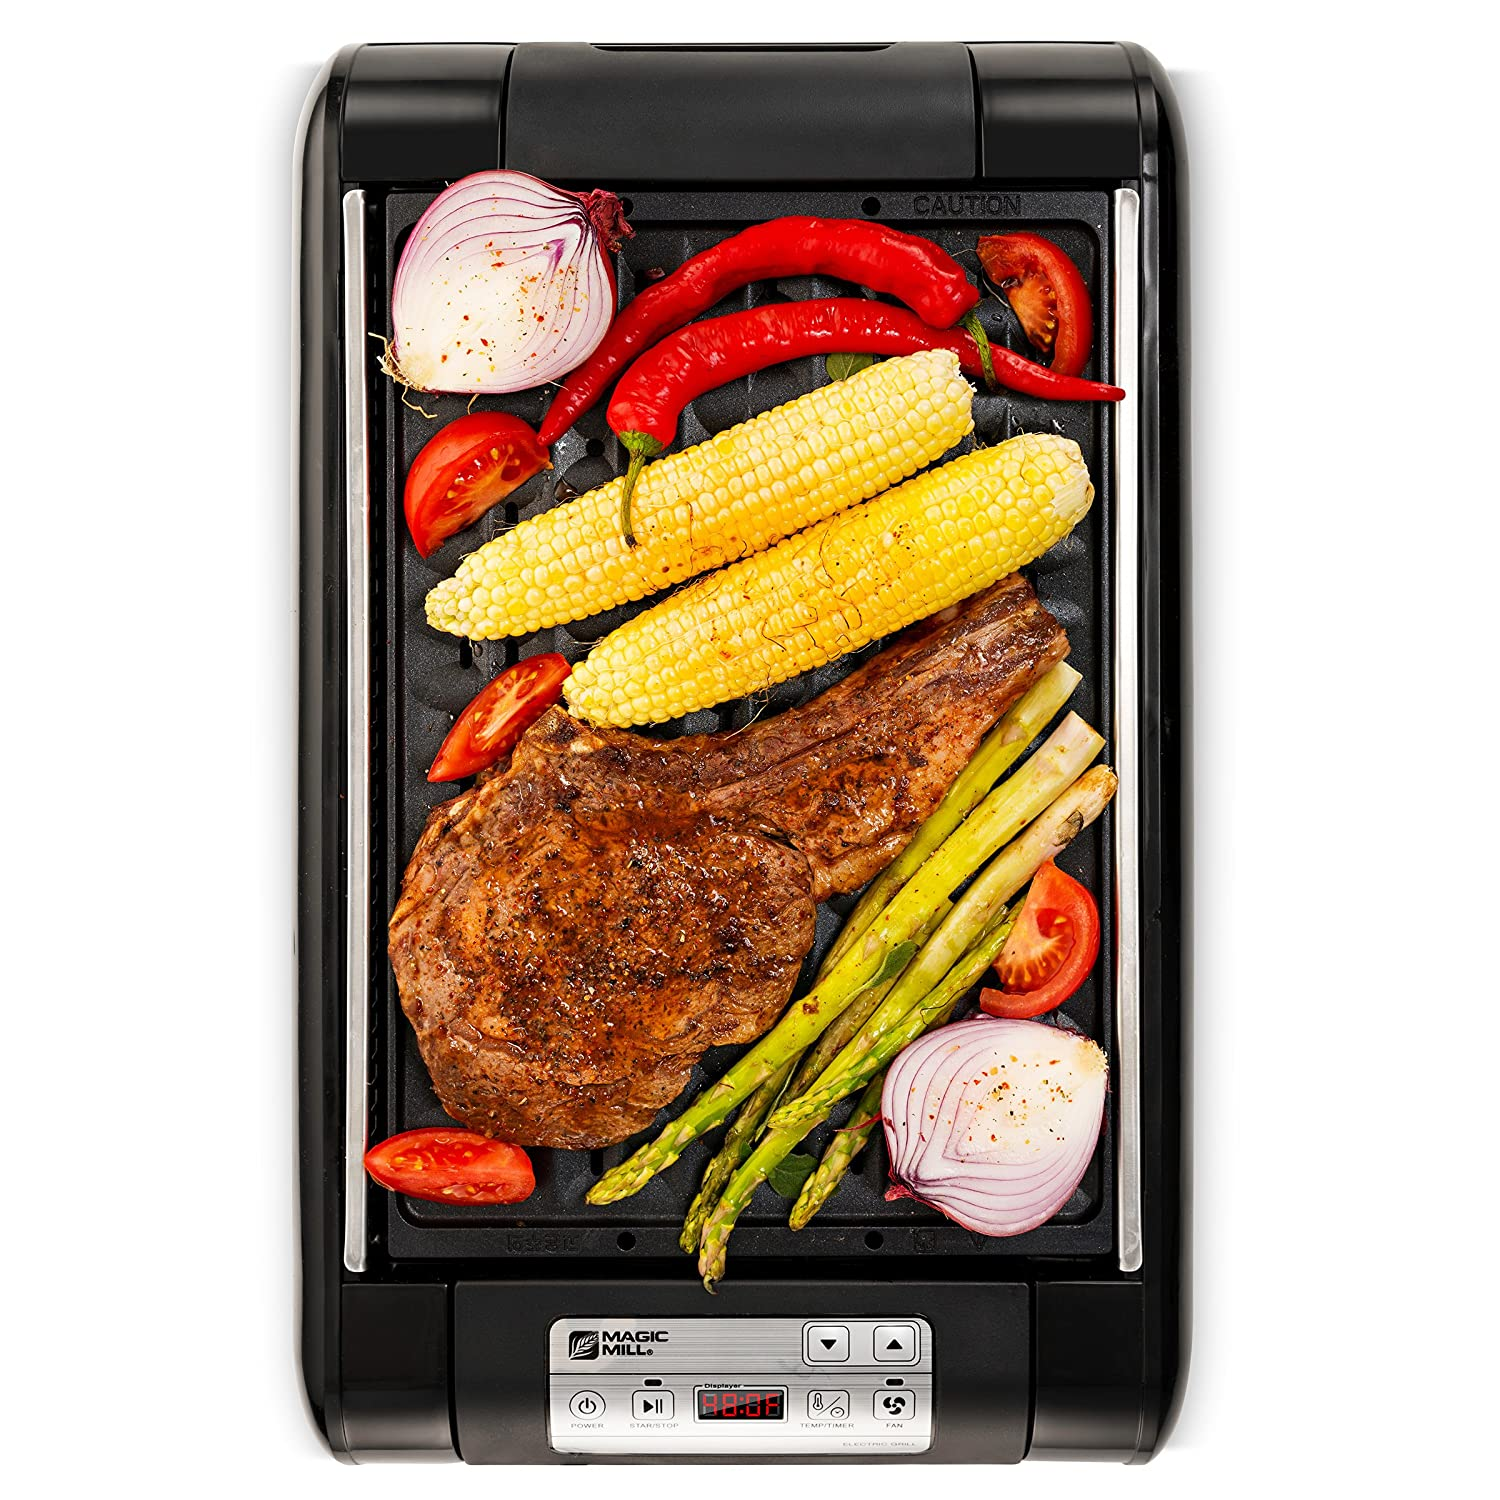 Magic-Mill Electric Smokeless Grill and Griddle Pan for Indoor BBQ in Your kitchen